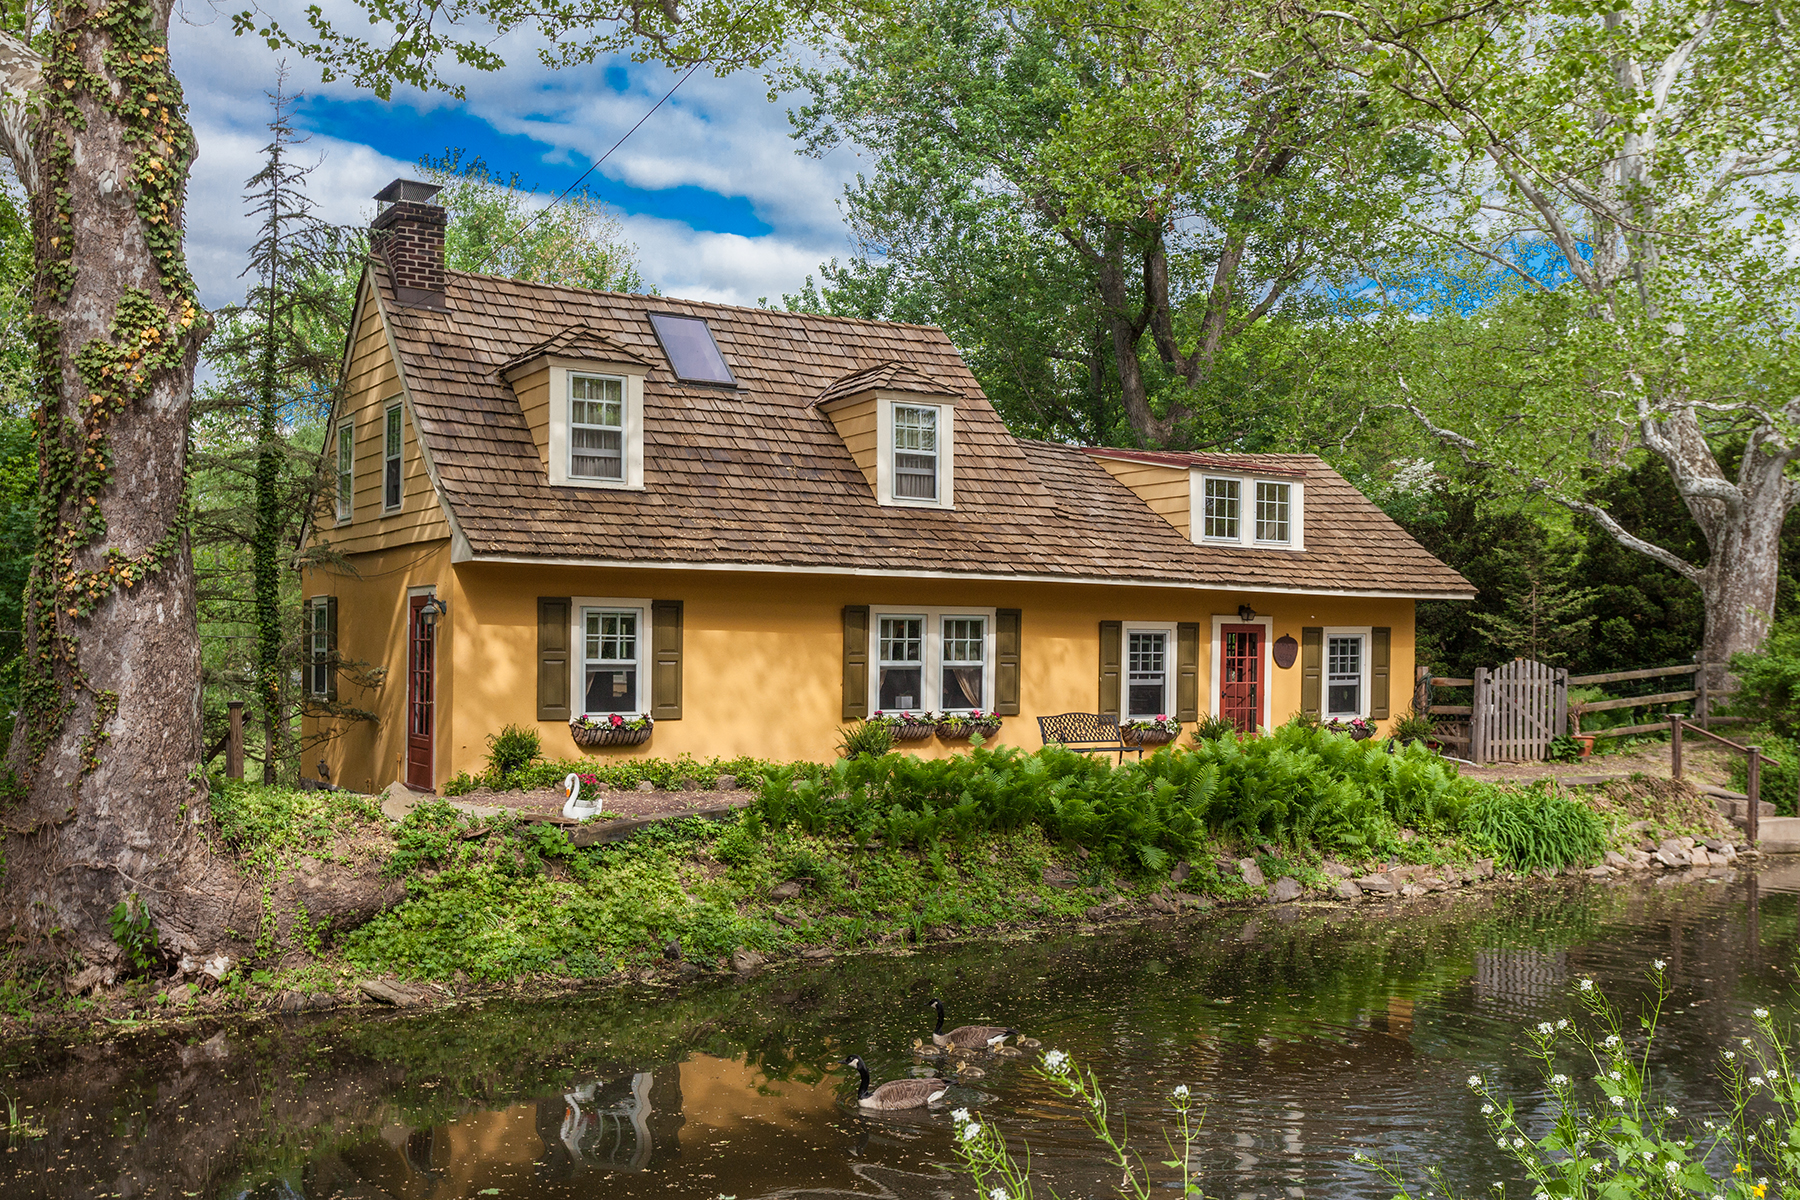 Single Family Home for Sale at New Hope, PA 2472 River Rd New Hope, Pennsylvania 18938 United States